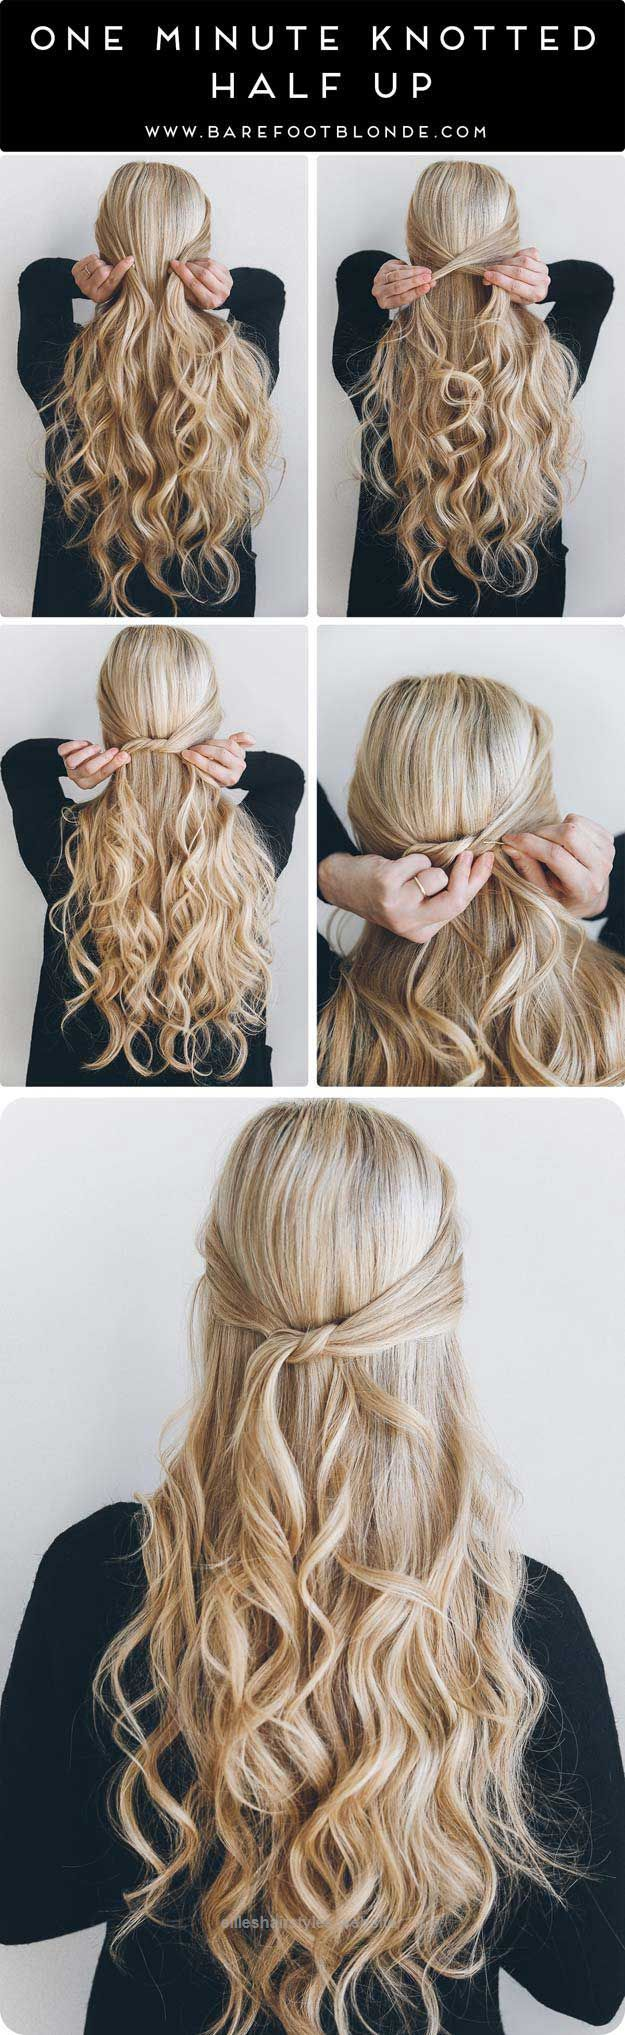 Fantastic Amazing Half Up-Half Down Hairstyles For Long Hair – One Minute Knotted Half Up – Easy Step By Step Tutorials And Tips For Hair Styles And Hair Ideas For Prom, For The Bridesmaid, For Ho ..